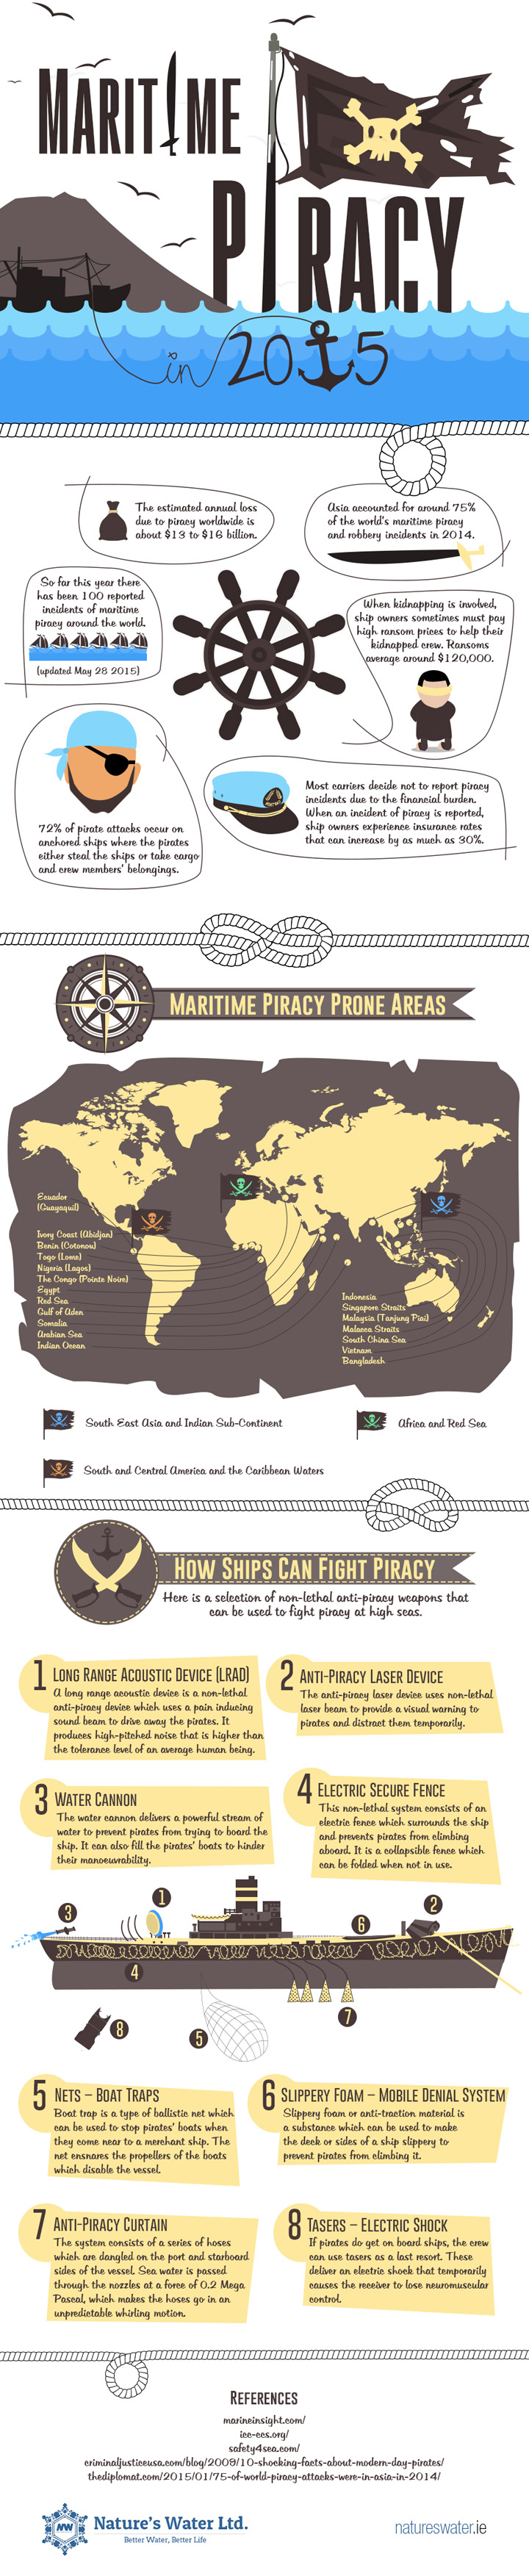 Maritime-Piracy-2015-Infographic-720